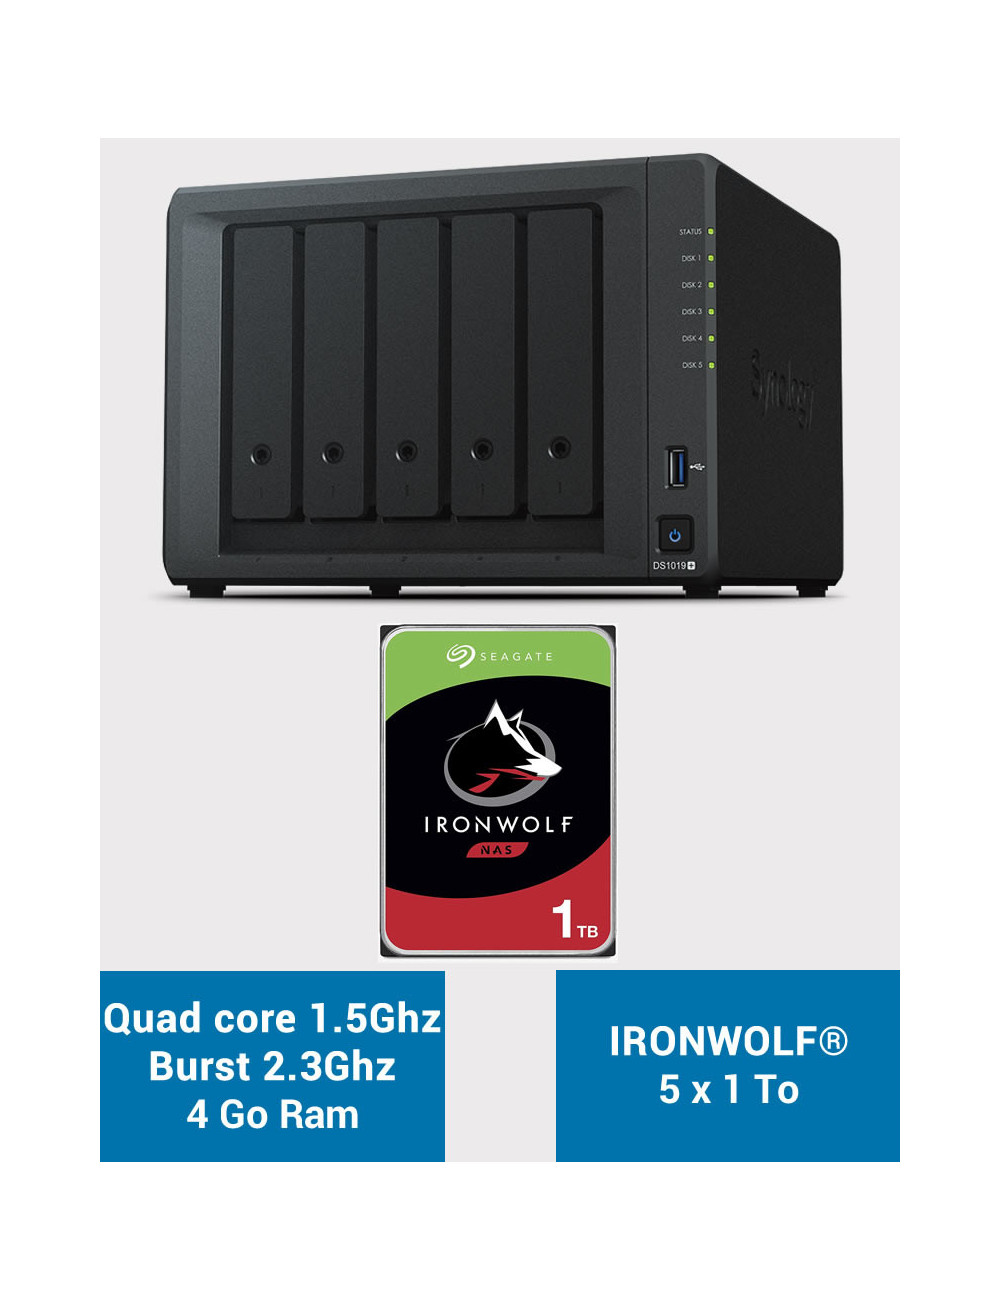 Synology DS1019+ NAS Server IRONWOLF 5TB (5x1TB)